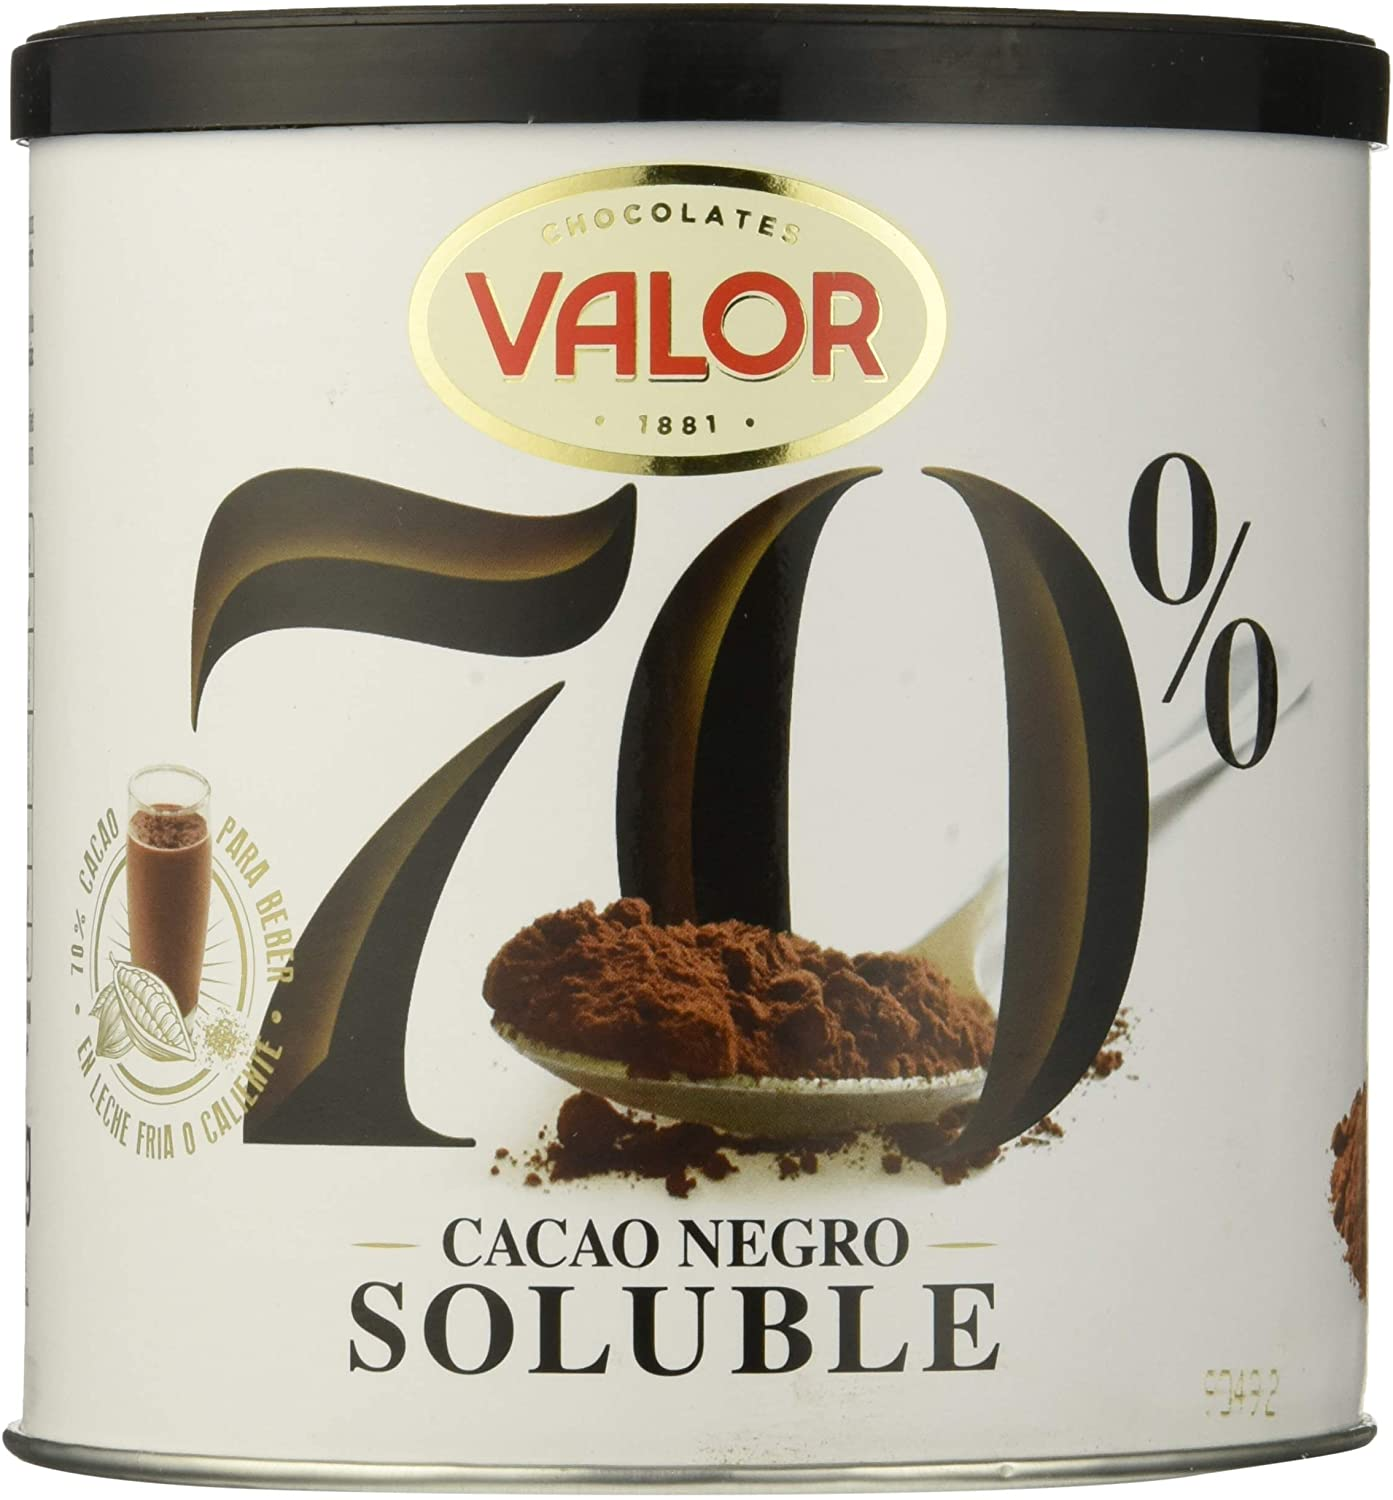 6x300g Valor Cacao Soluble Negro 70%